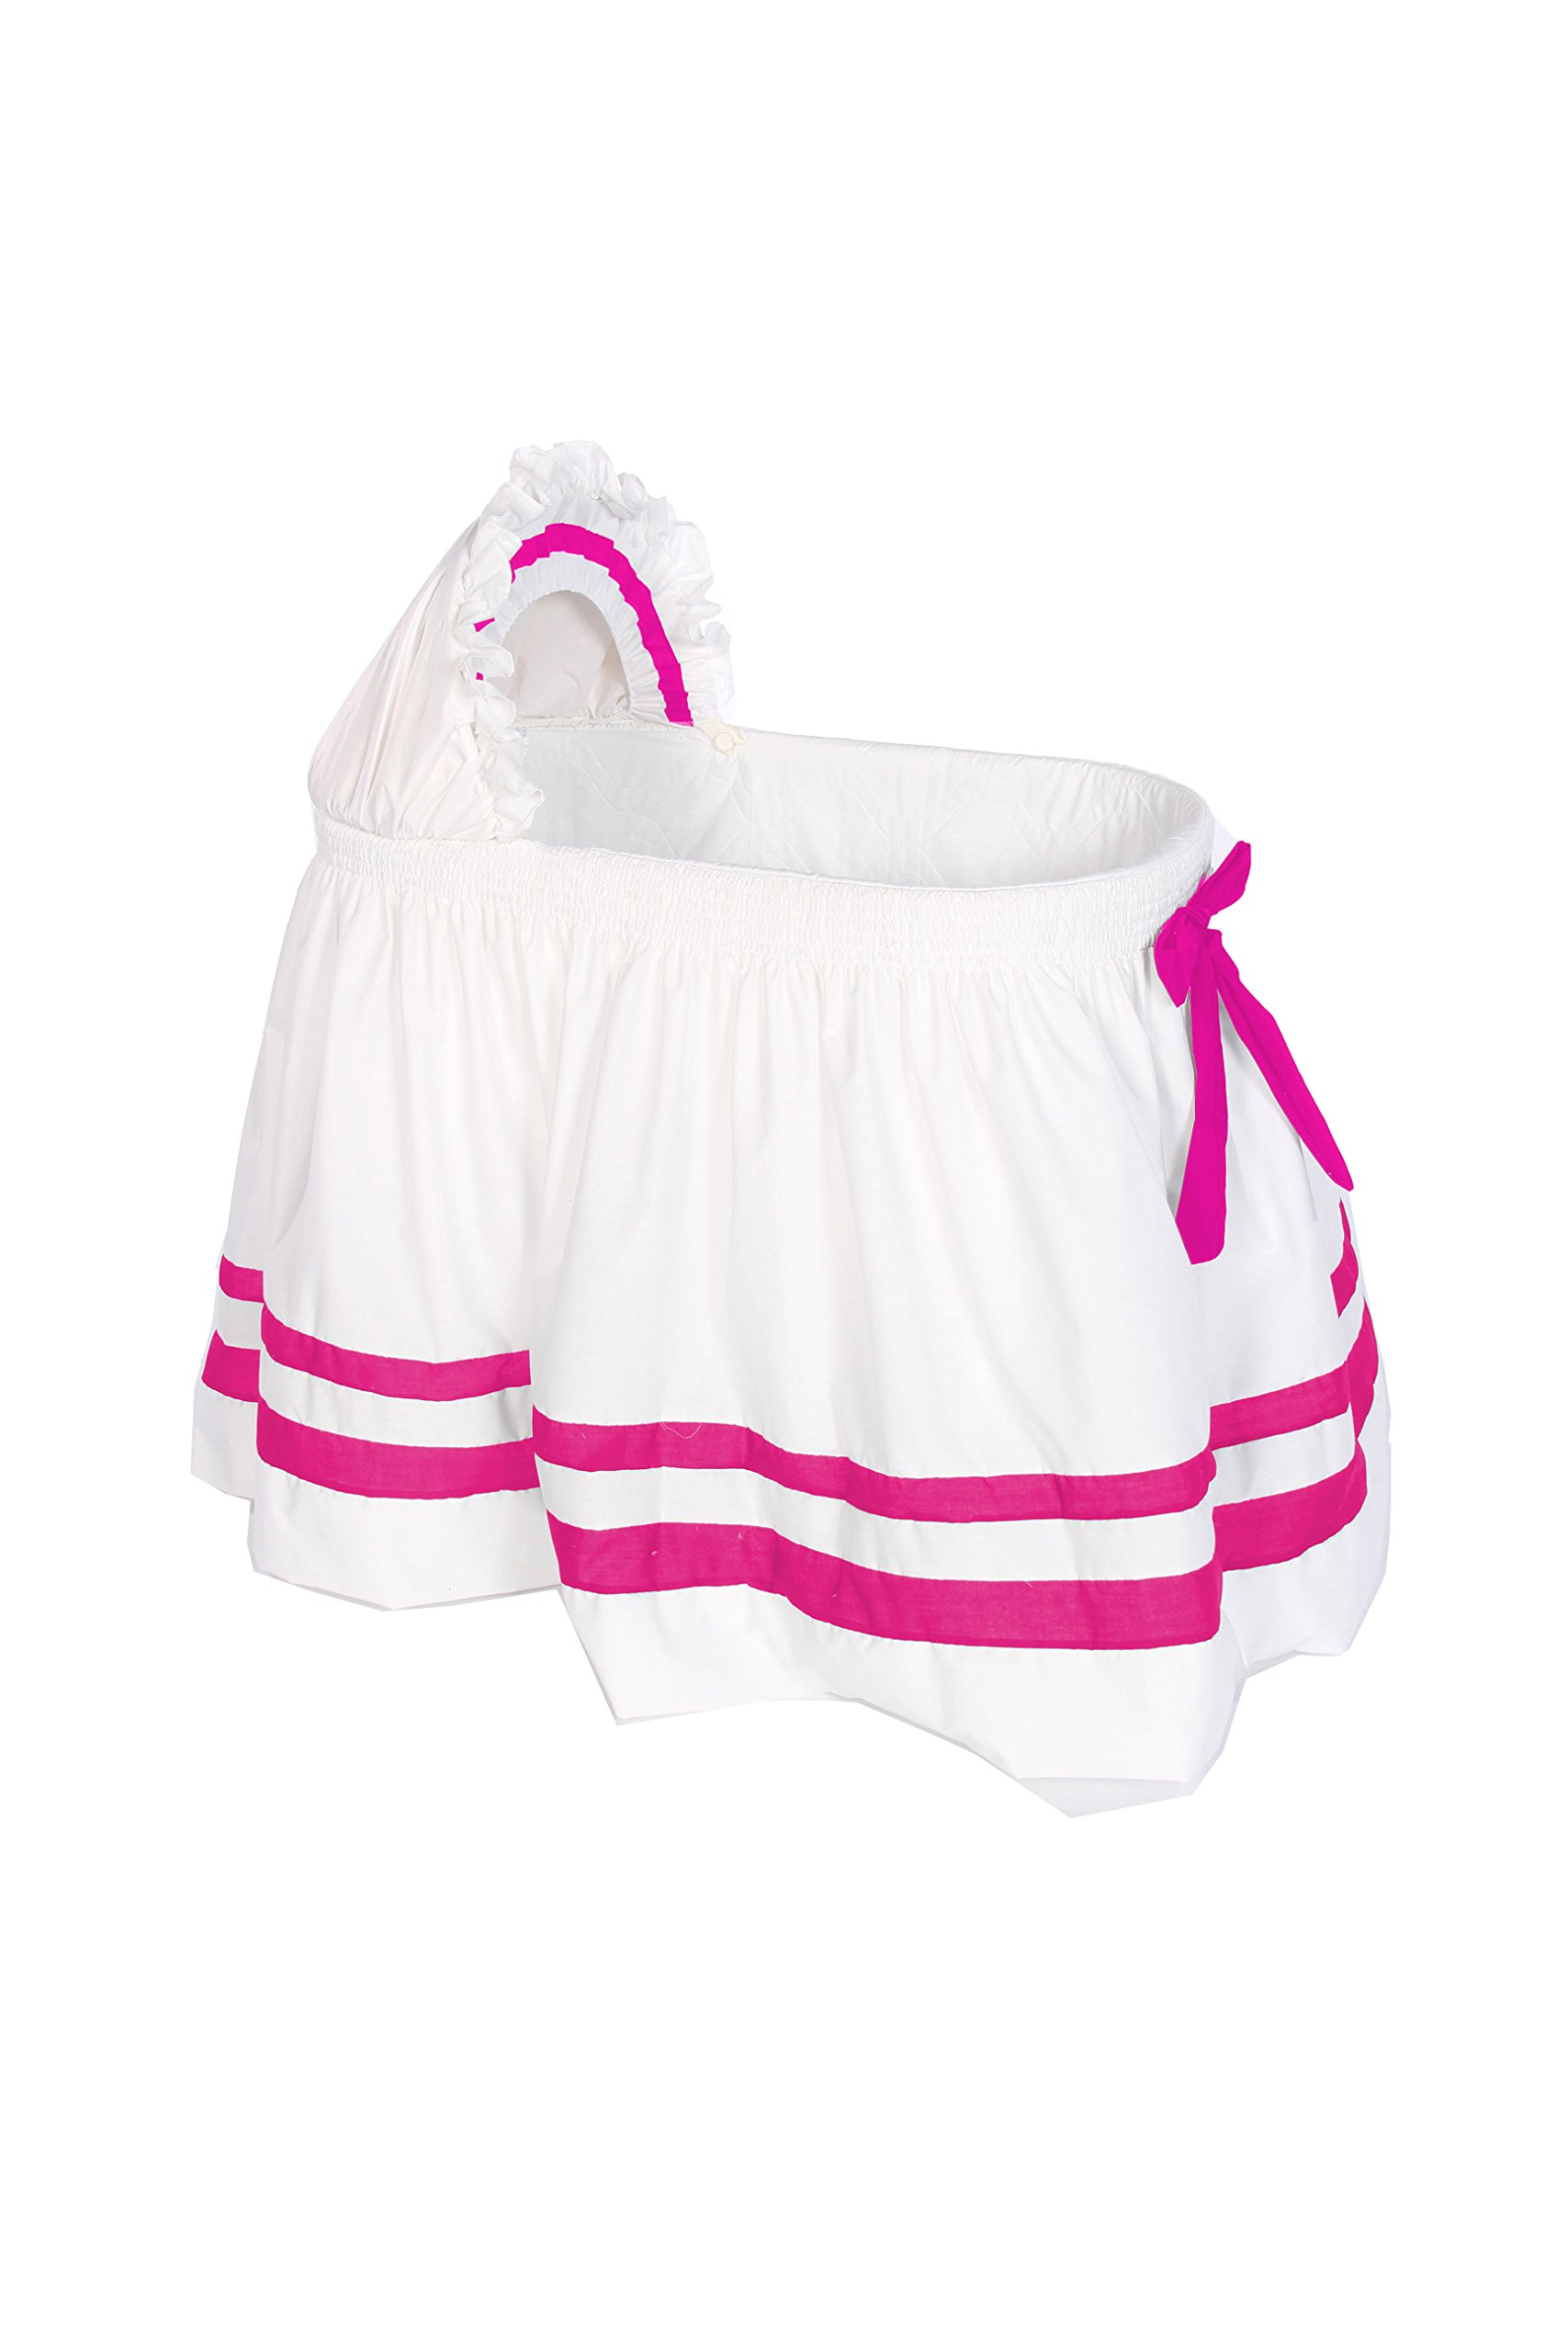 Baby Doll Bedding Modern Hotel Style II Bassinet Skirt, Hot Pink by BabyDoll Bedding